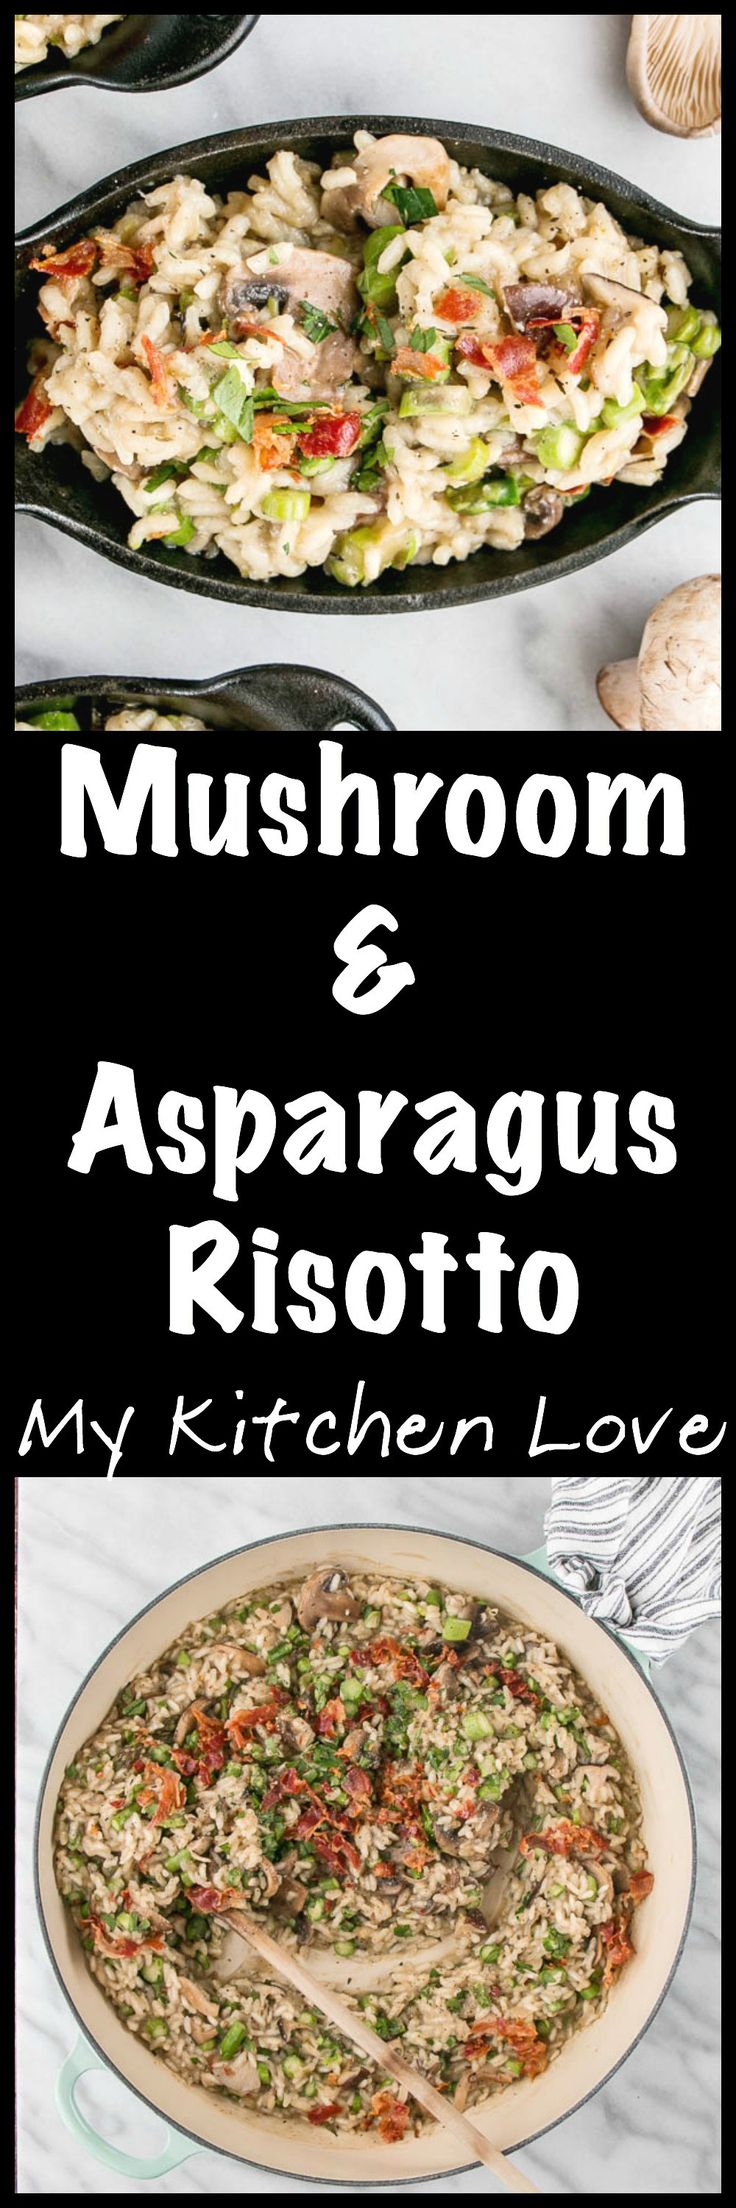 Mushroom and Asparagus Risotto   My Kitchen Love